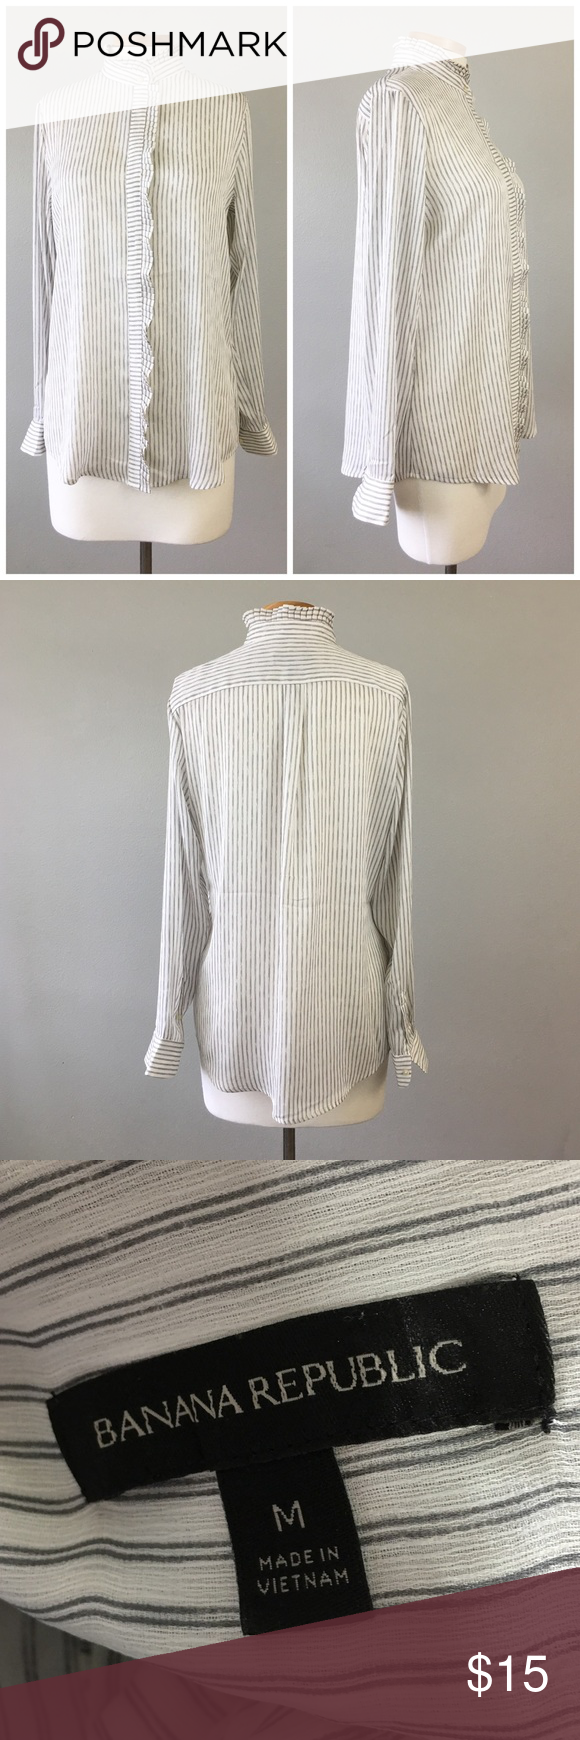 Banana Republic Striped Button Up Ruffle Blouse Banana Republic Striped Button Up Ruffle Blouse. Size Medium. Thank you for looking at my listing. Please feel free to comment with any questions (no trades/modeling).  •Fabric: 100% Polyester  •Condition: Excellent, no visible flaws.   ✨Bundle and save!✨10% off 2 items, 20% off 3 items & 30% off 5+ items! KA Banana Republic Tops Button Down Shirts